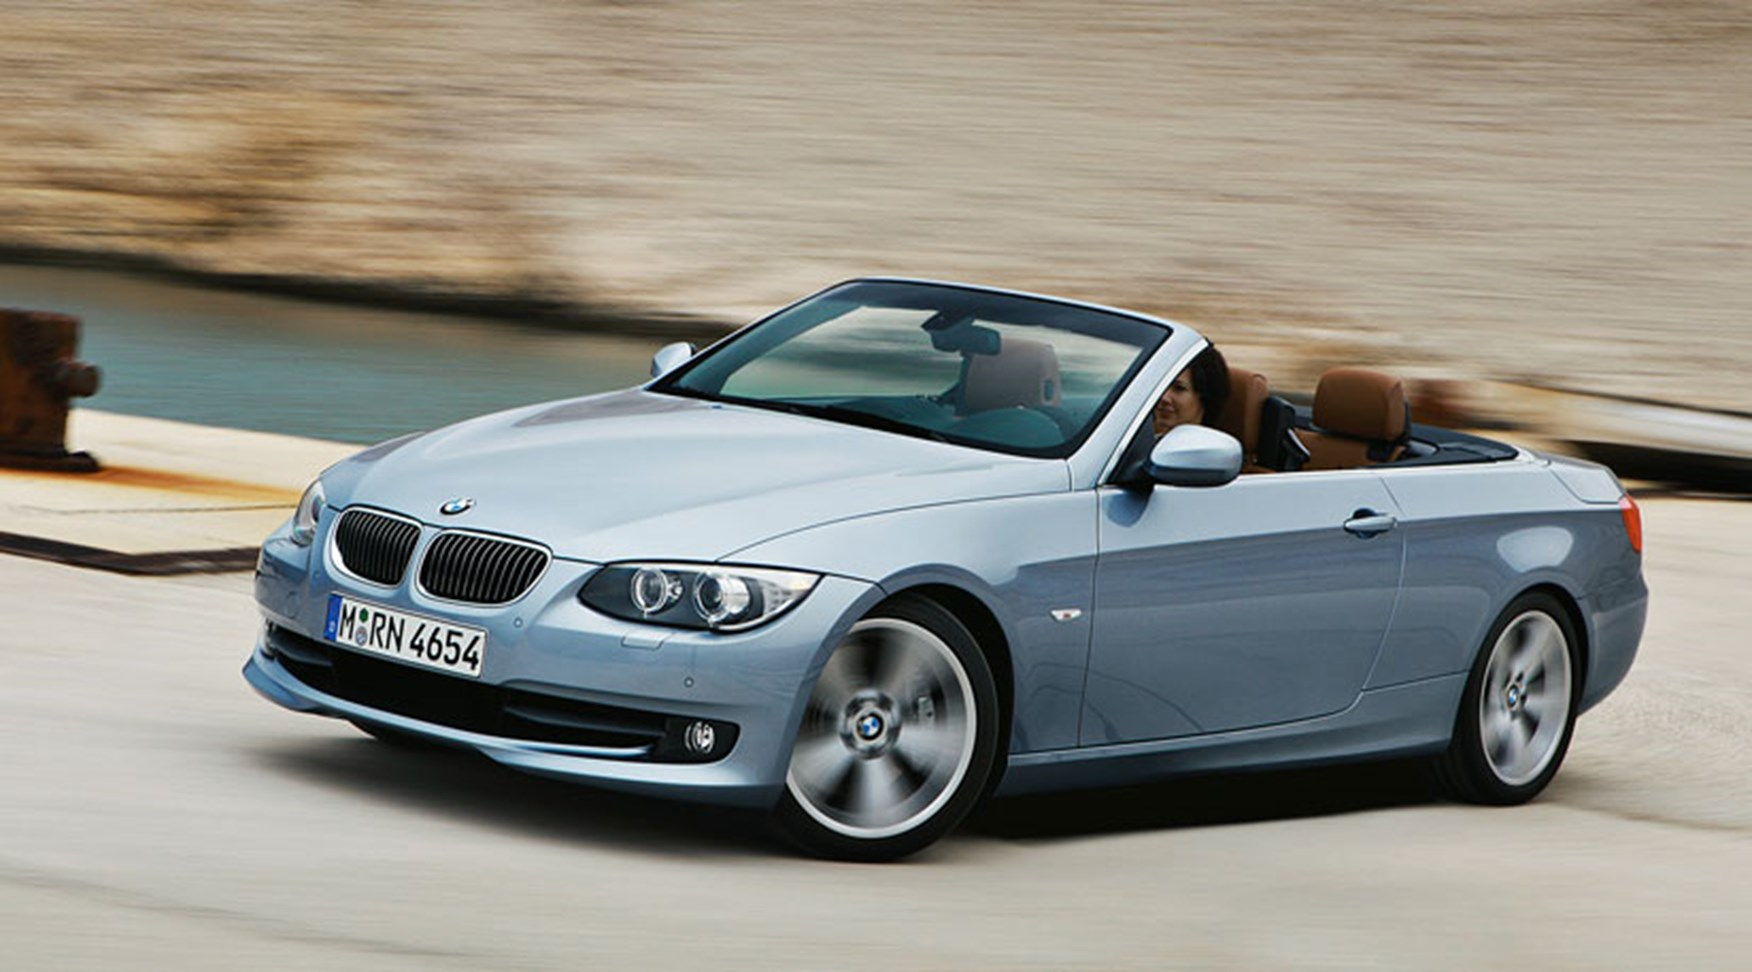 bmw 3-series coupé and convertible facelift (2010): first official